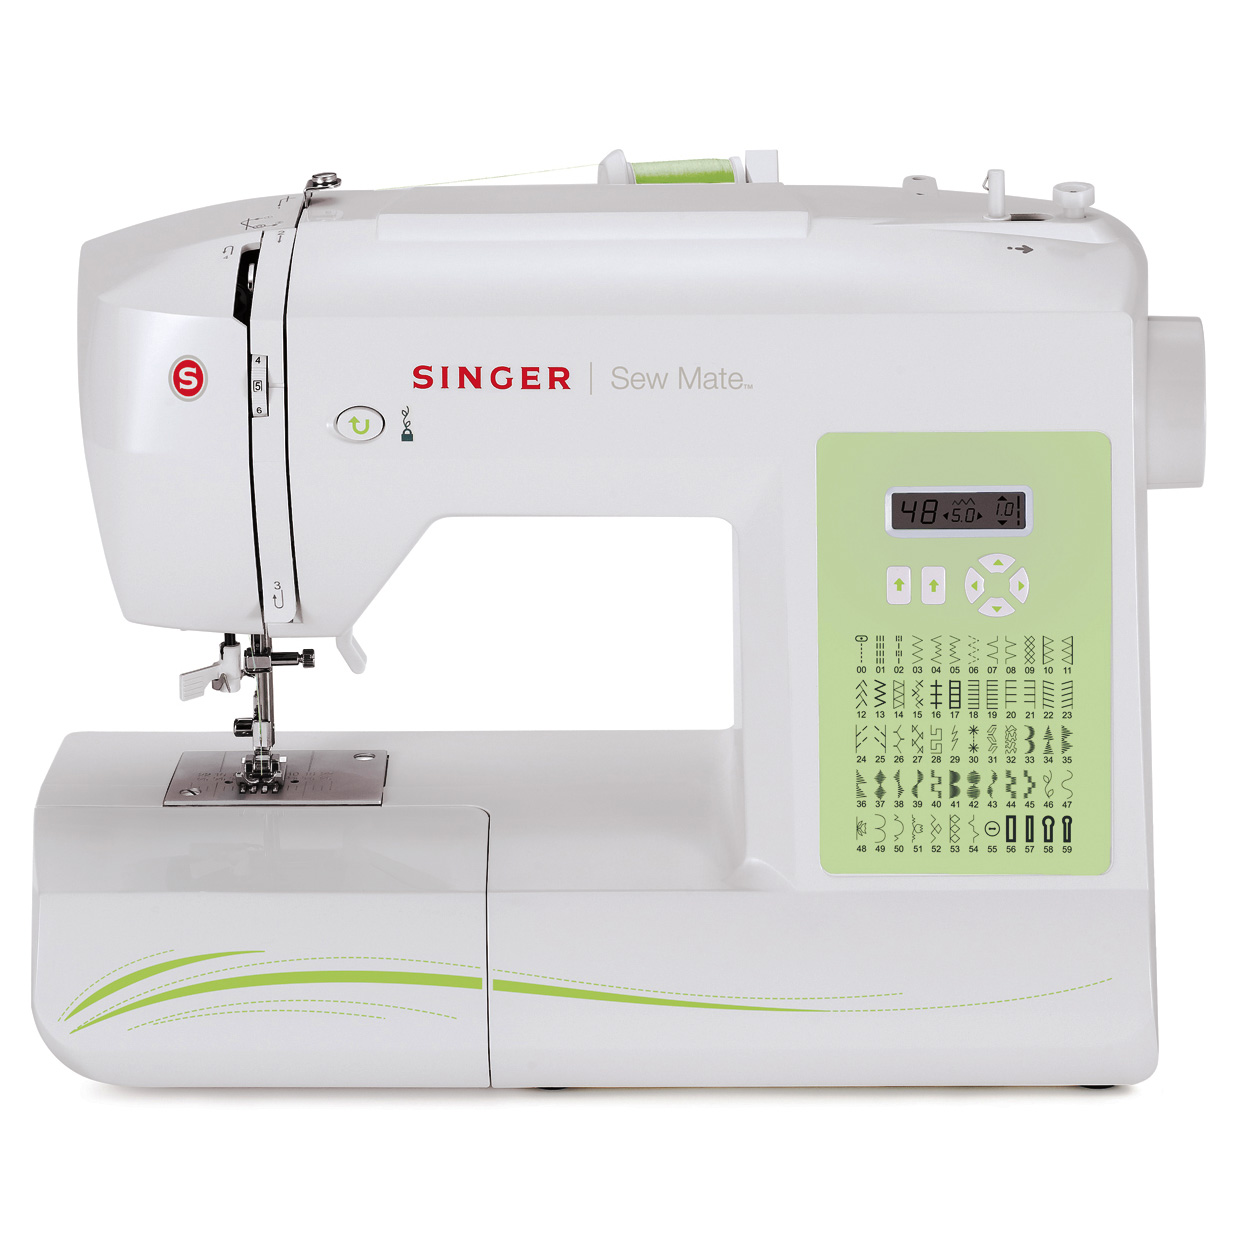 Singer Sew Mate Sewing Machine On Sale!